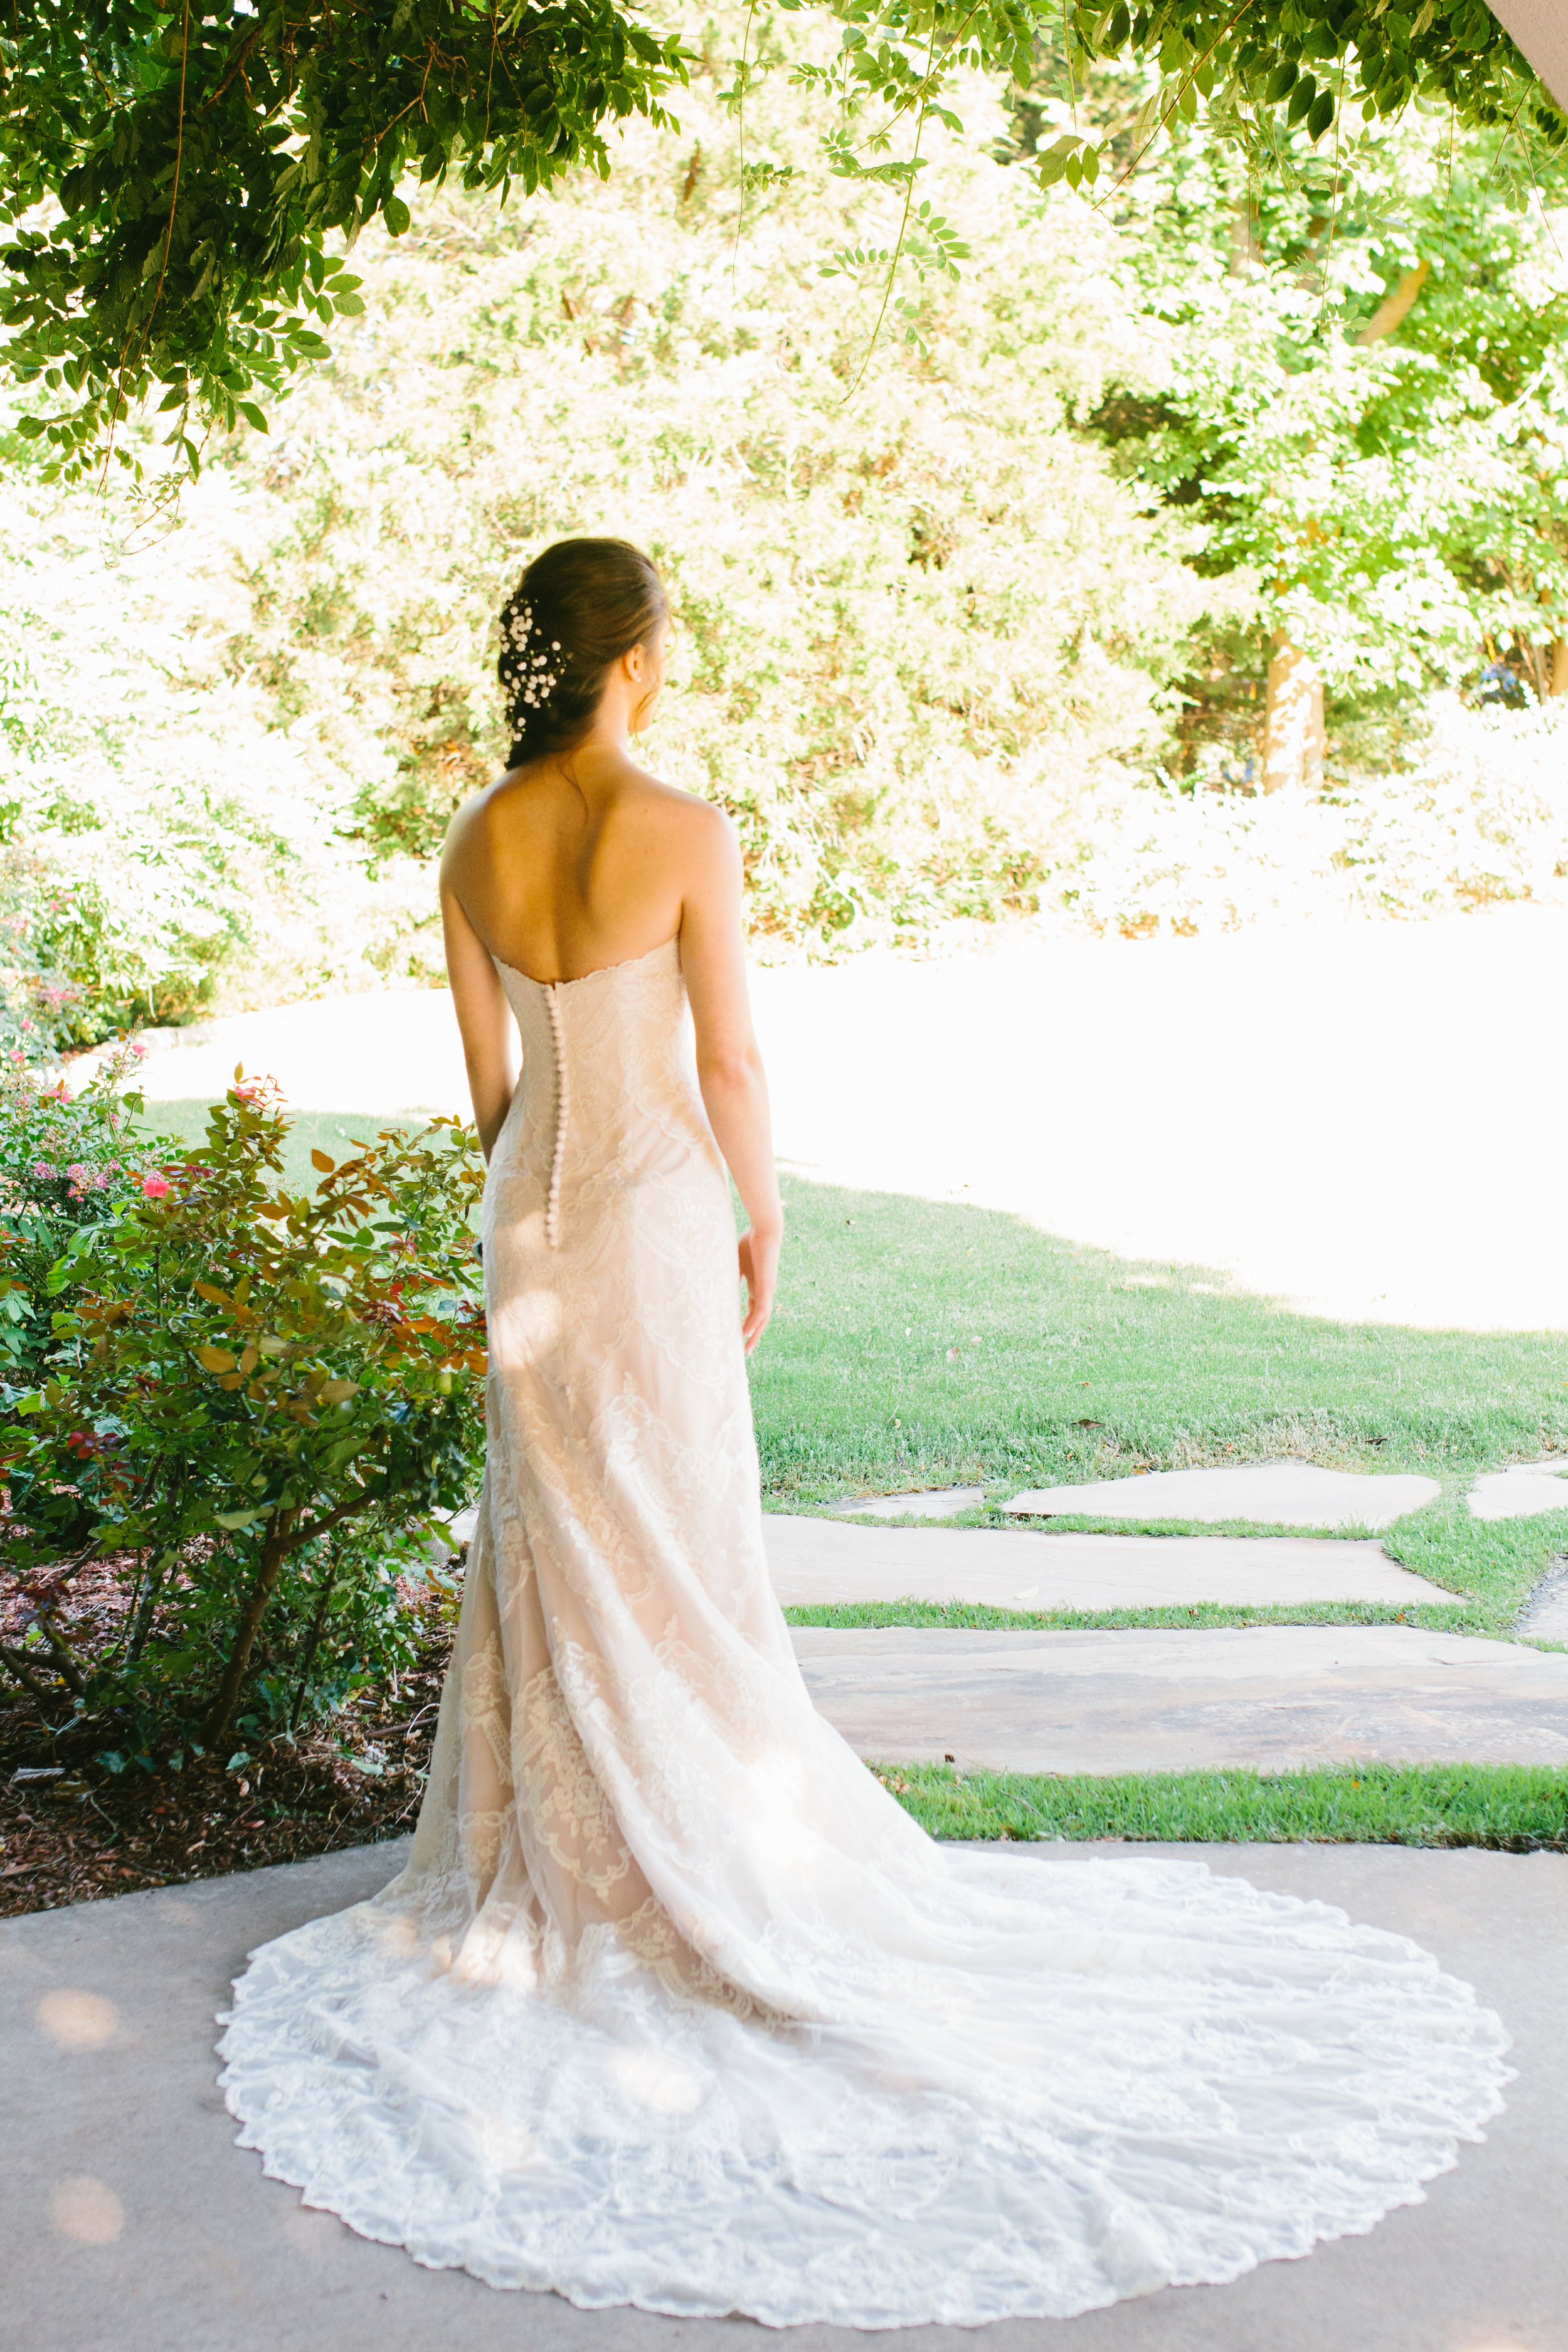 Lace Button Down Wedding Dress - A Champagne + Blush Oklahoma Wedding - Meditations Event Center - From Britt's Eye View Photography